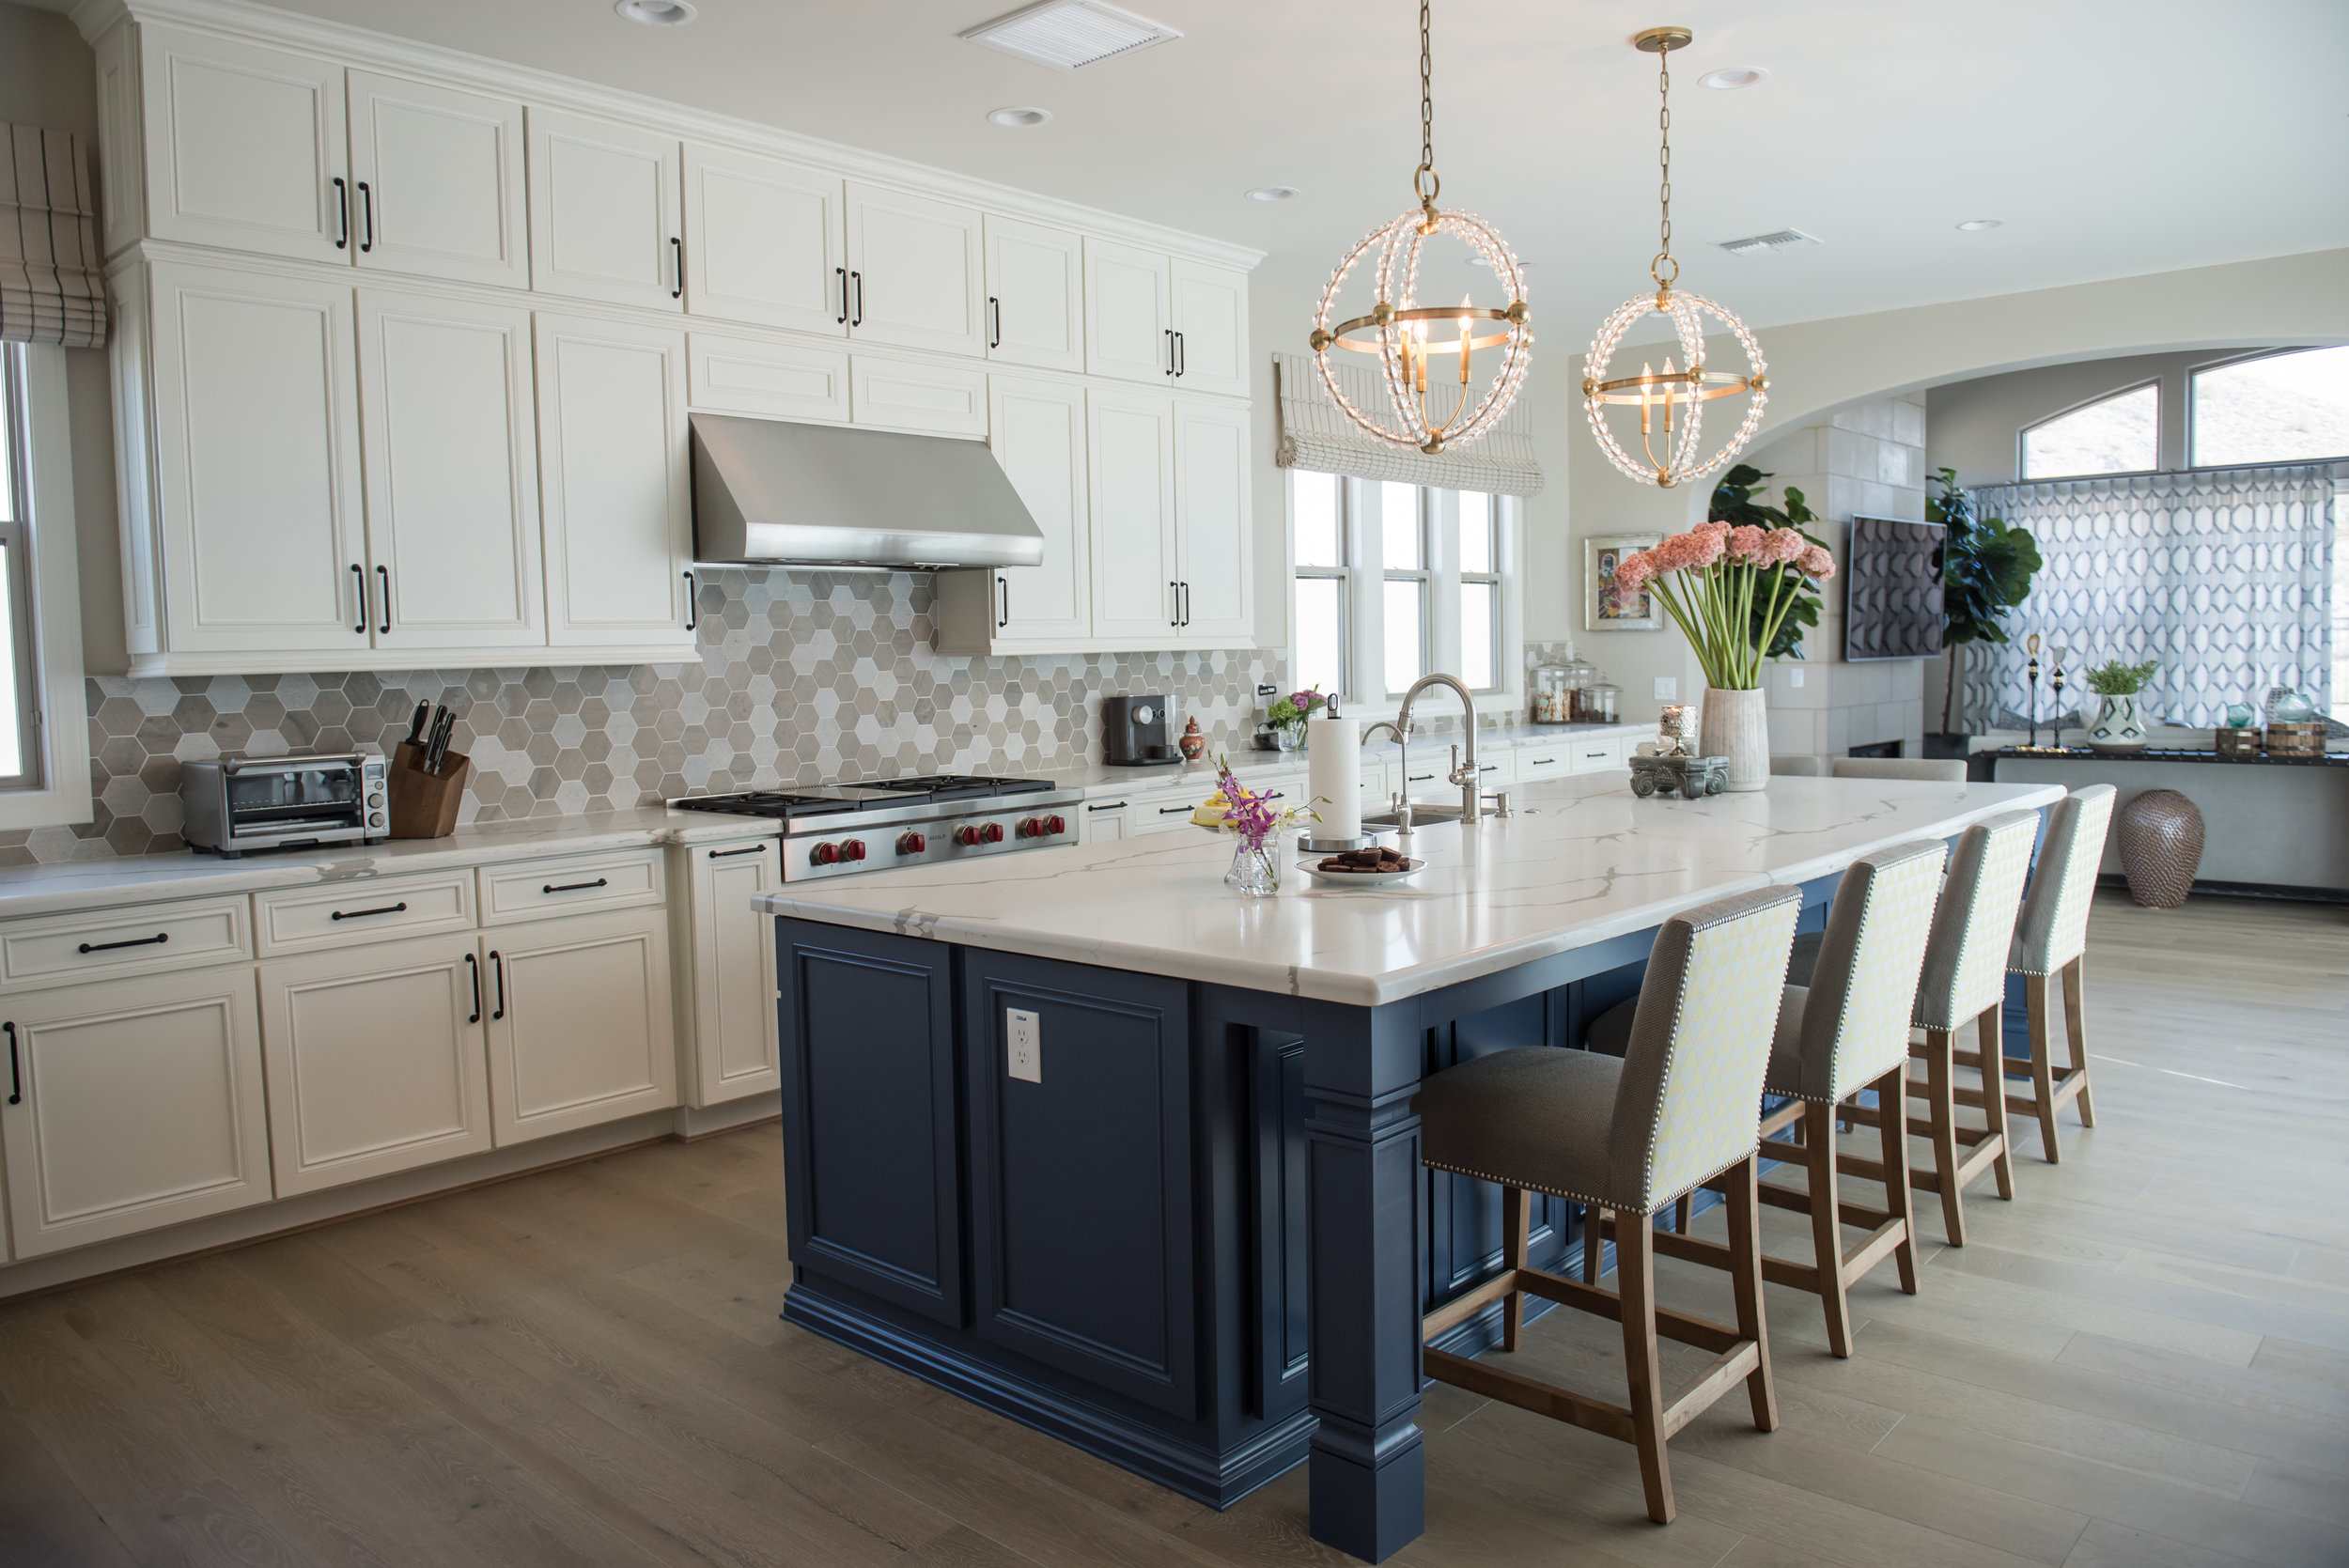 5 Kitchen+Transitional+Scottsdale+Chandelier.jpg